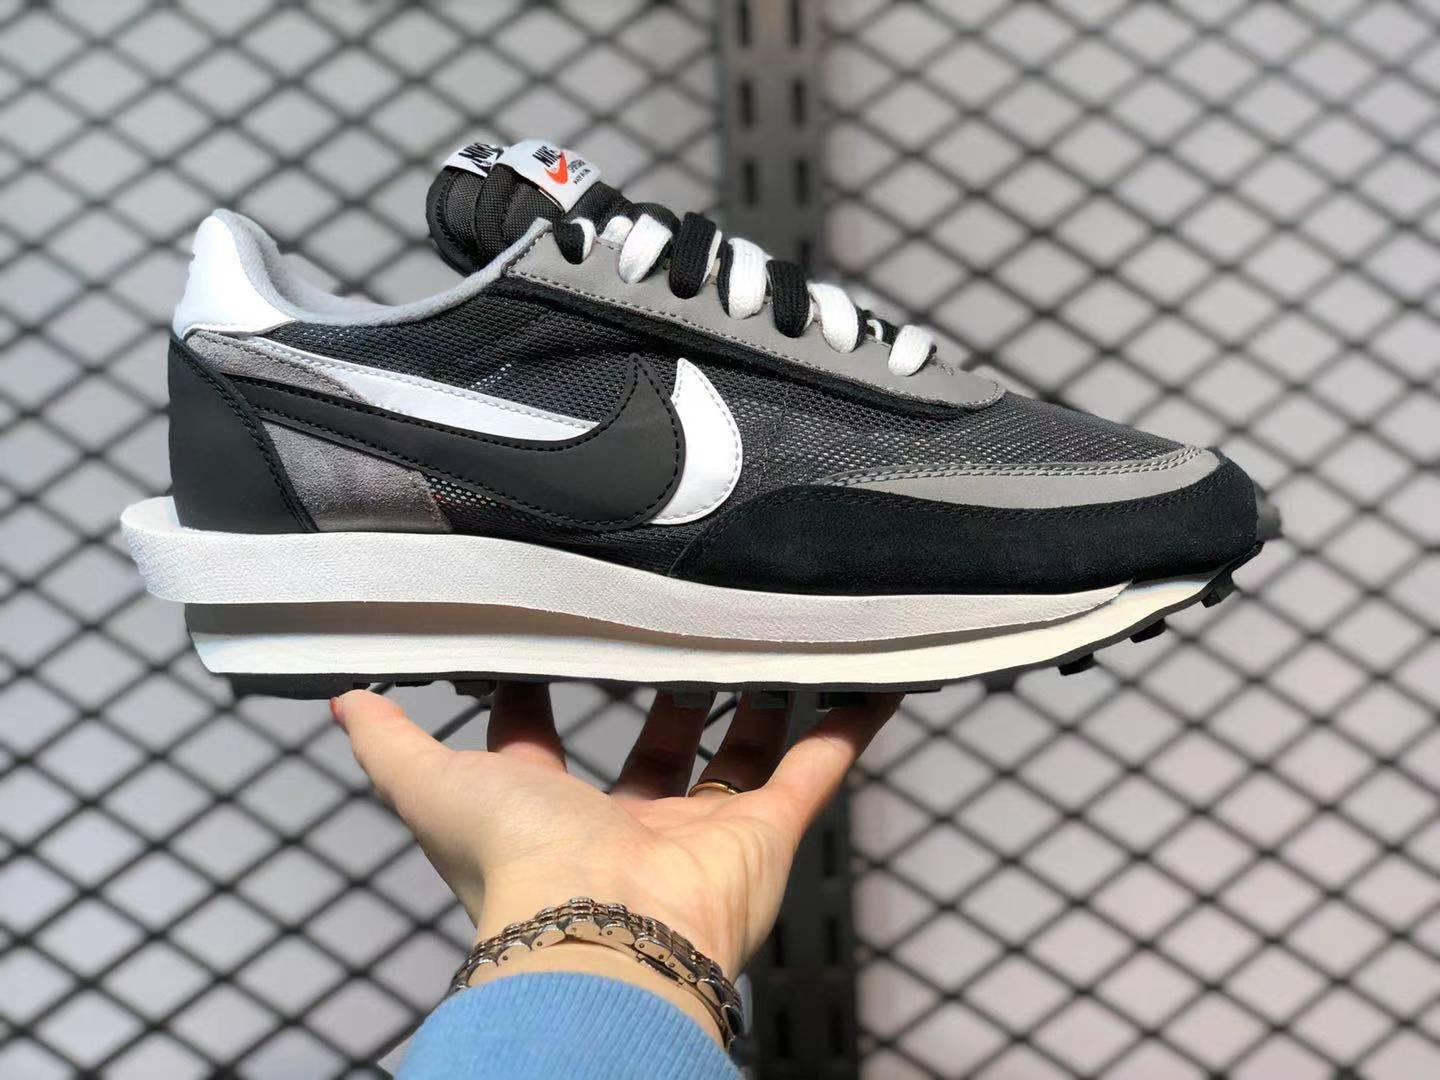 Nike LDWAFFLE Sacai Dark Grey BV0073-001 On Sale